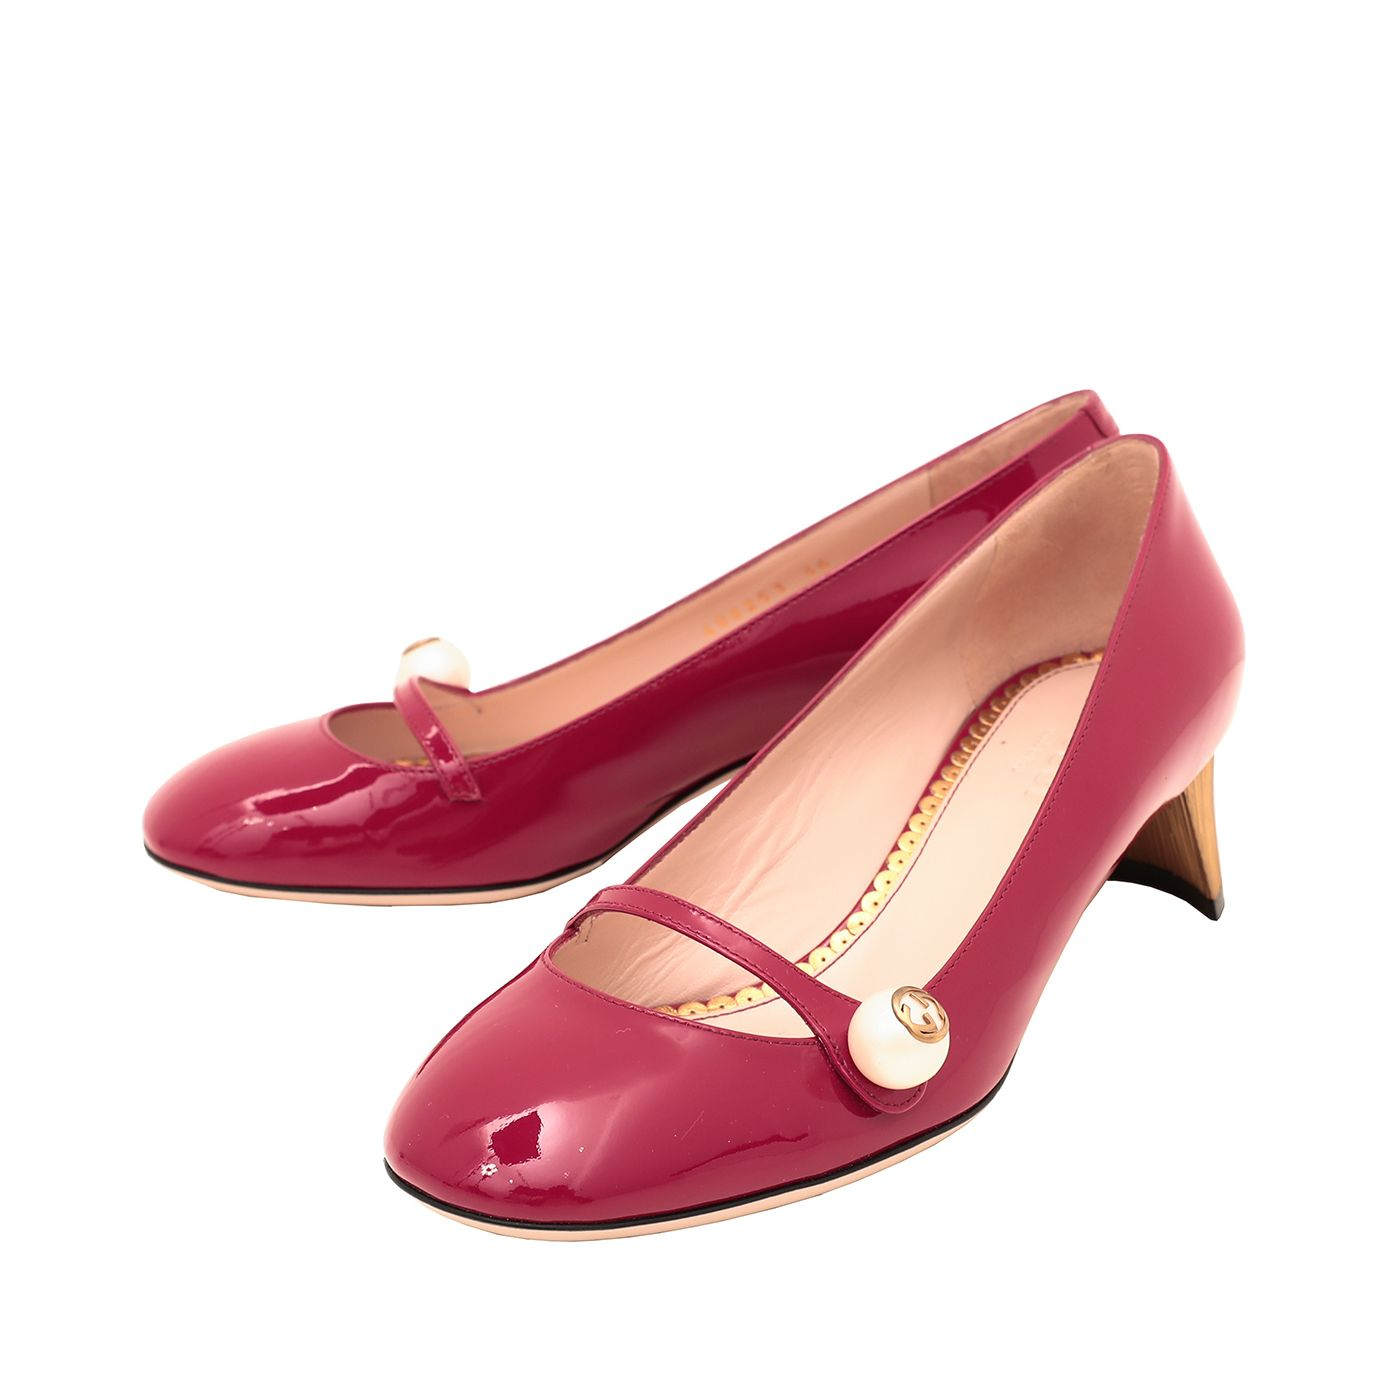 Gucci Red Pearl Detail Mary Jane Pump 36